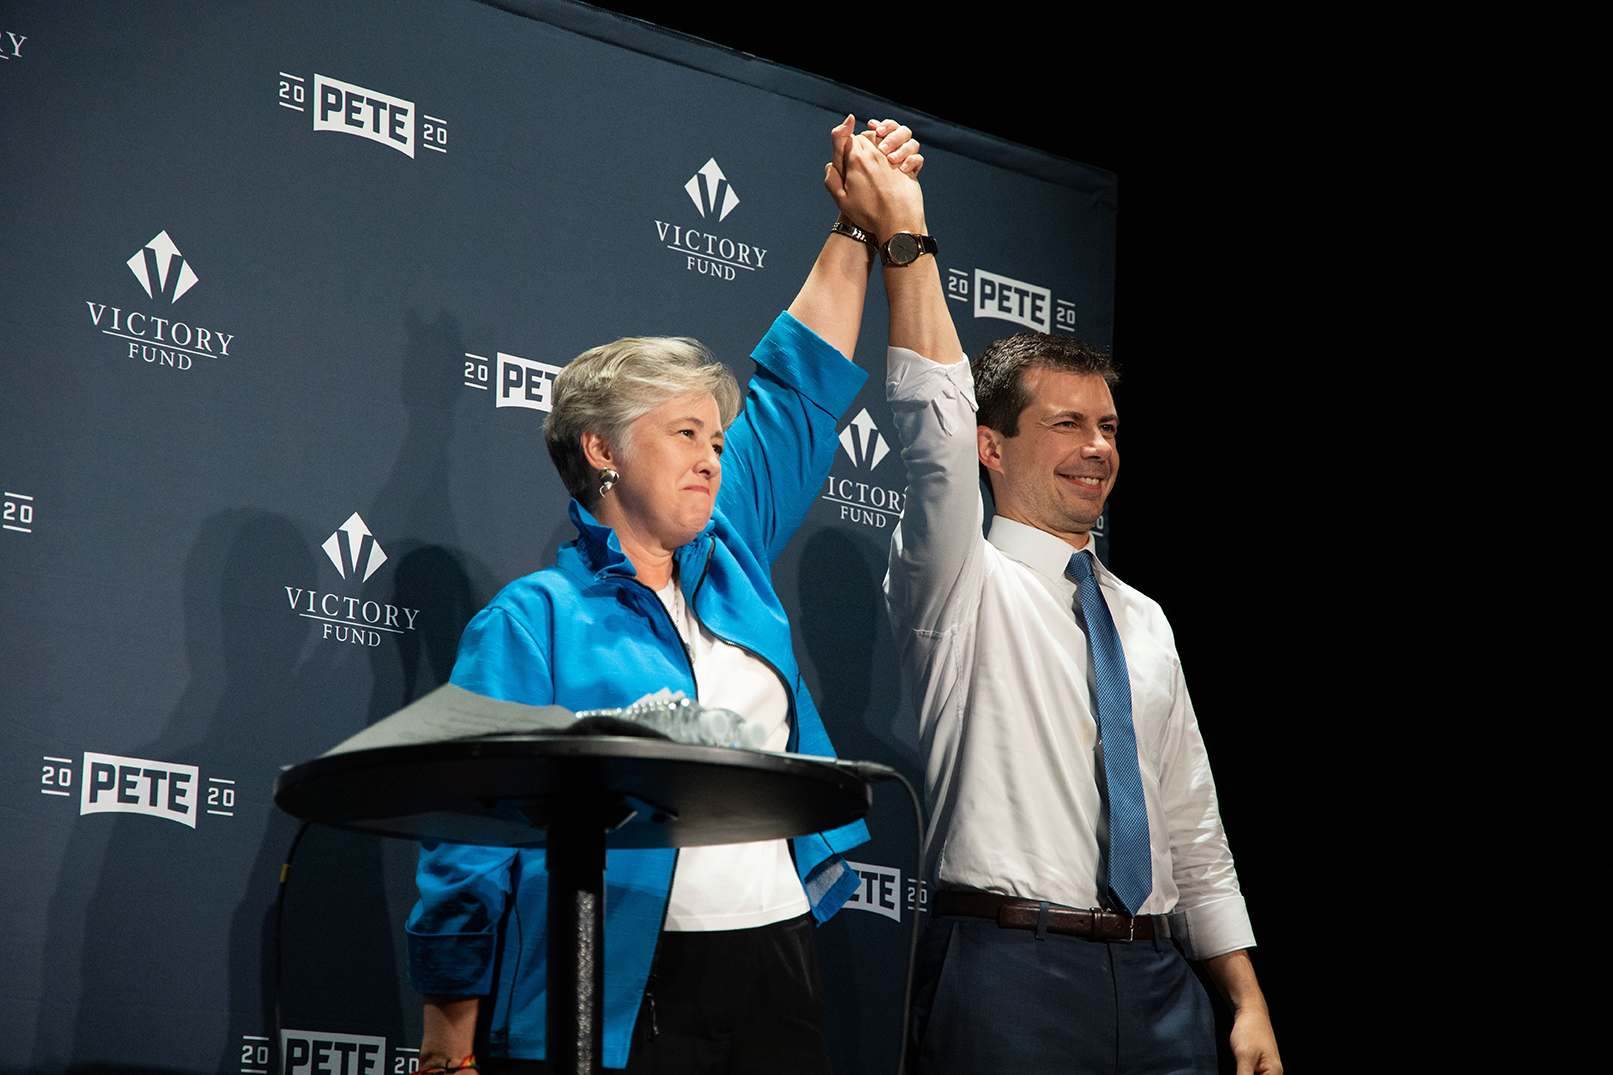 Victory Fund President &CEOAnnise Parker stands with Pete Buttigieg as Victory Fund announces its endorsement of Buttigieg in New York City on the 50th anniversary of the StonewallUprising in June 2019. It was Victory Fund's first endors